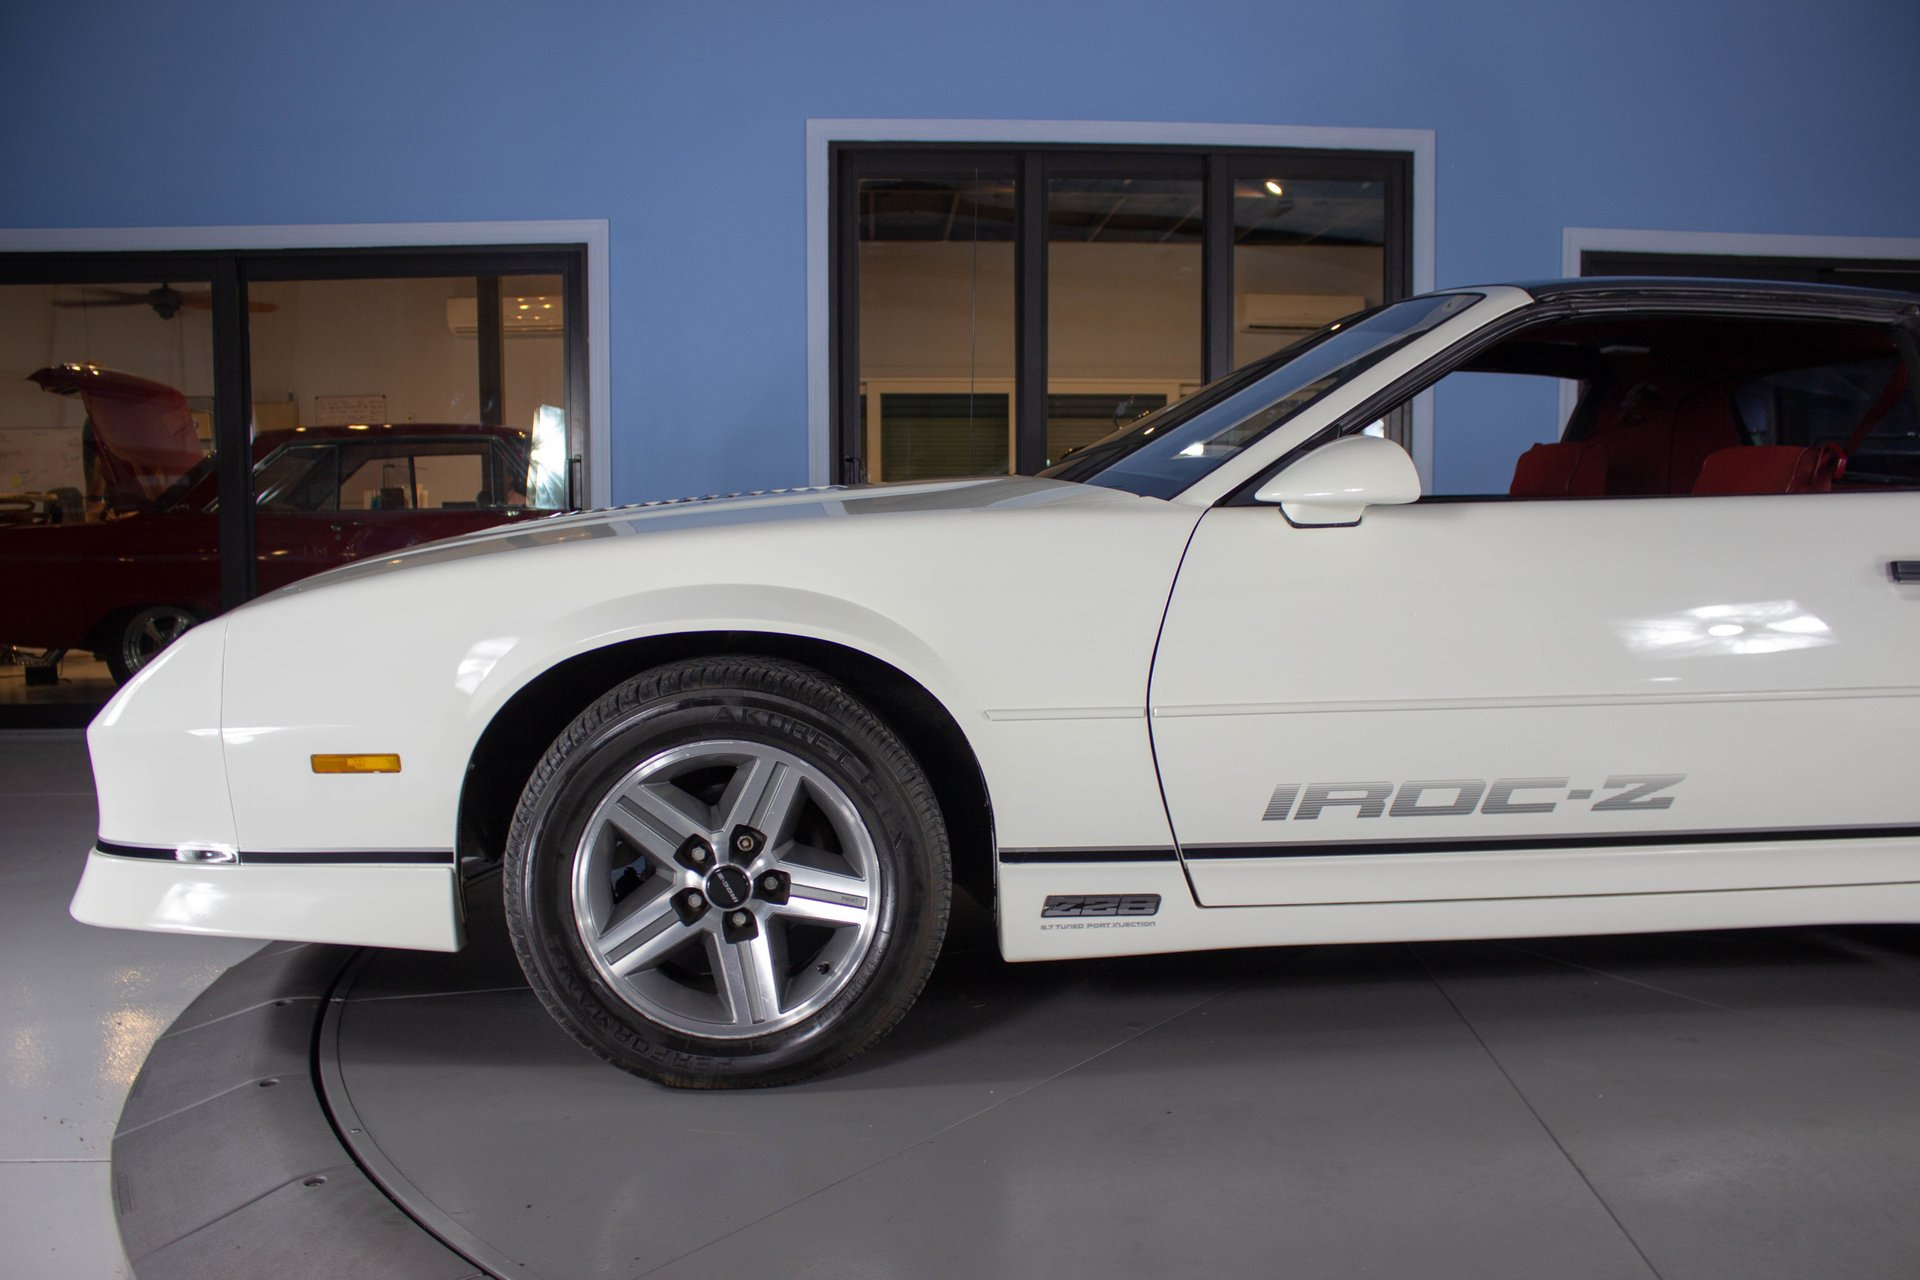 1987 Chevrolet Camaro | Classic Cars & Used Cars For Sale in